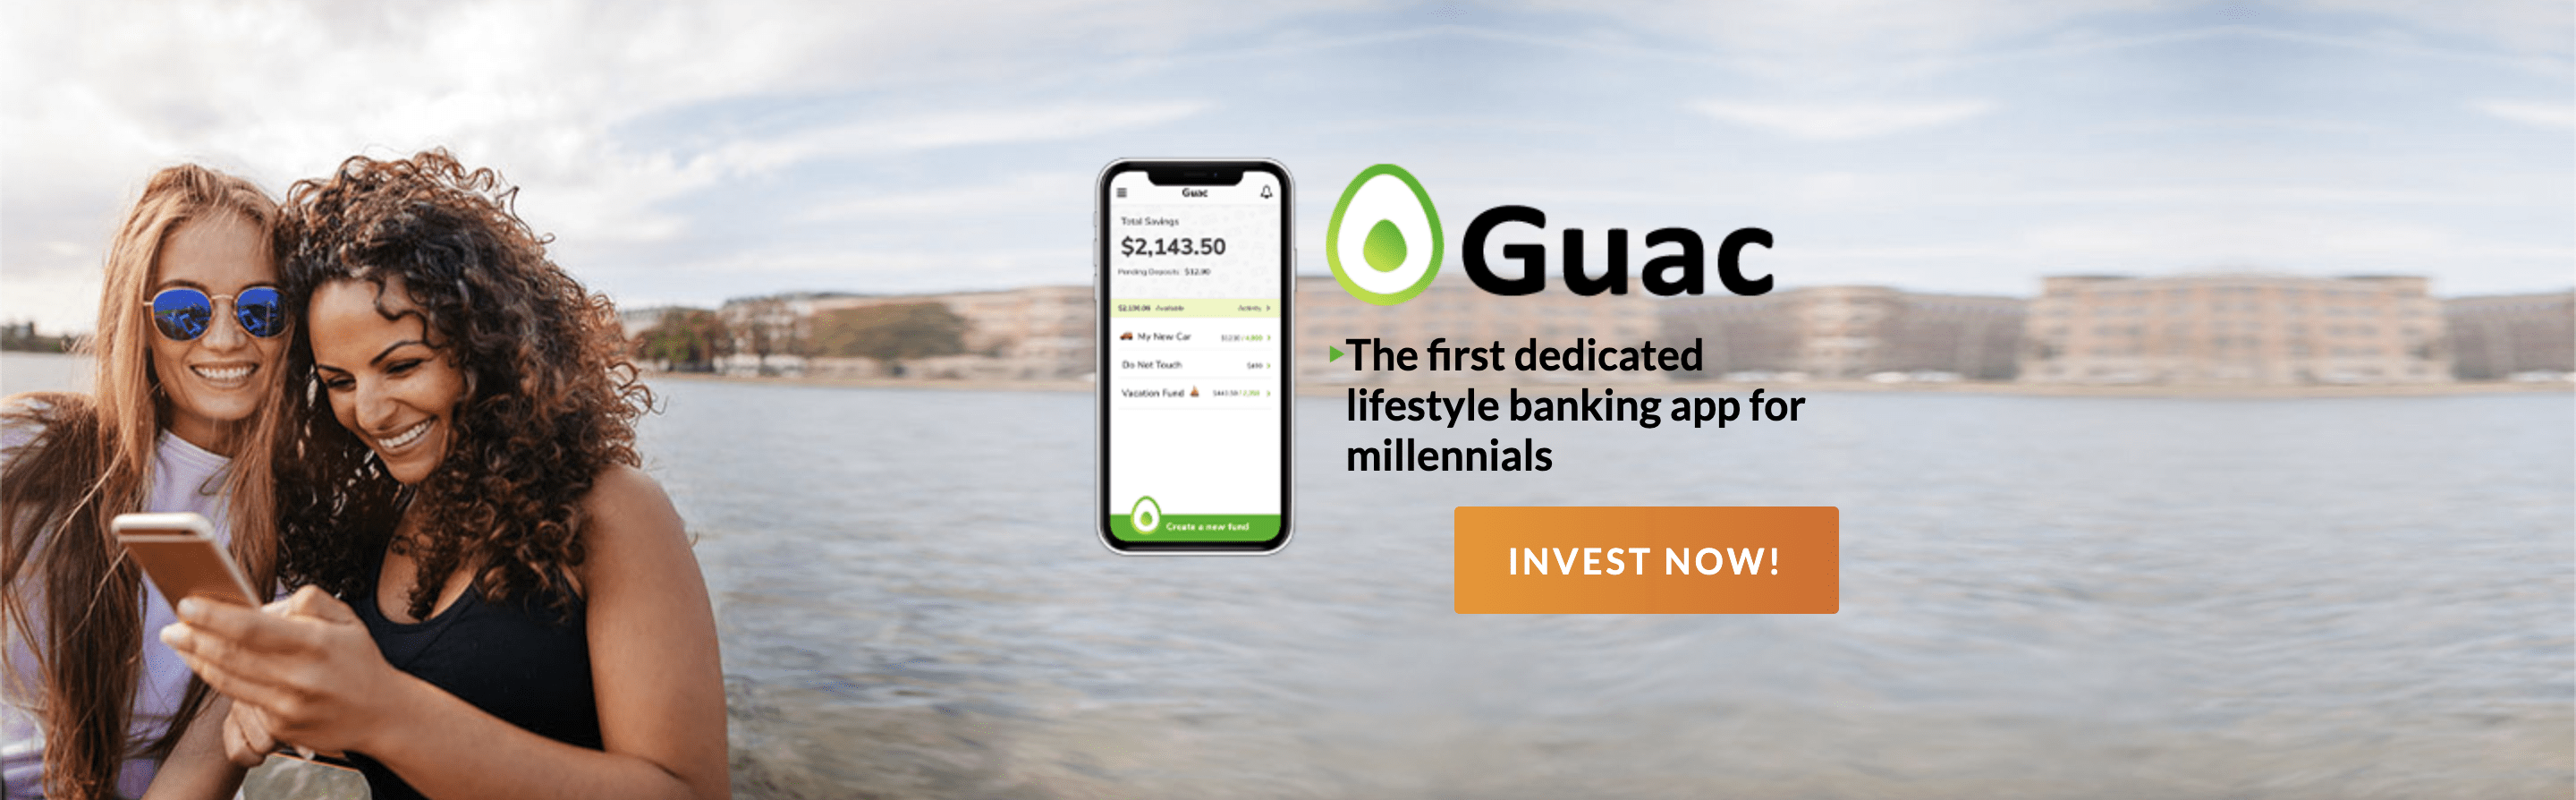 Savings App Guac Launches Equity Crowdfunding Campaign